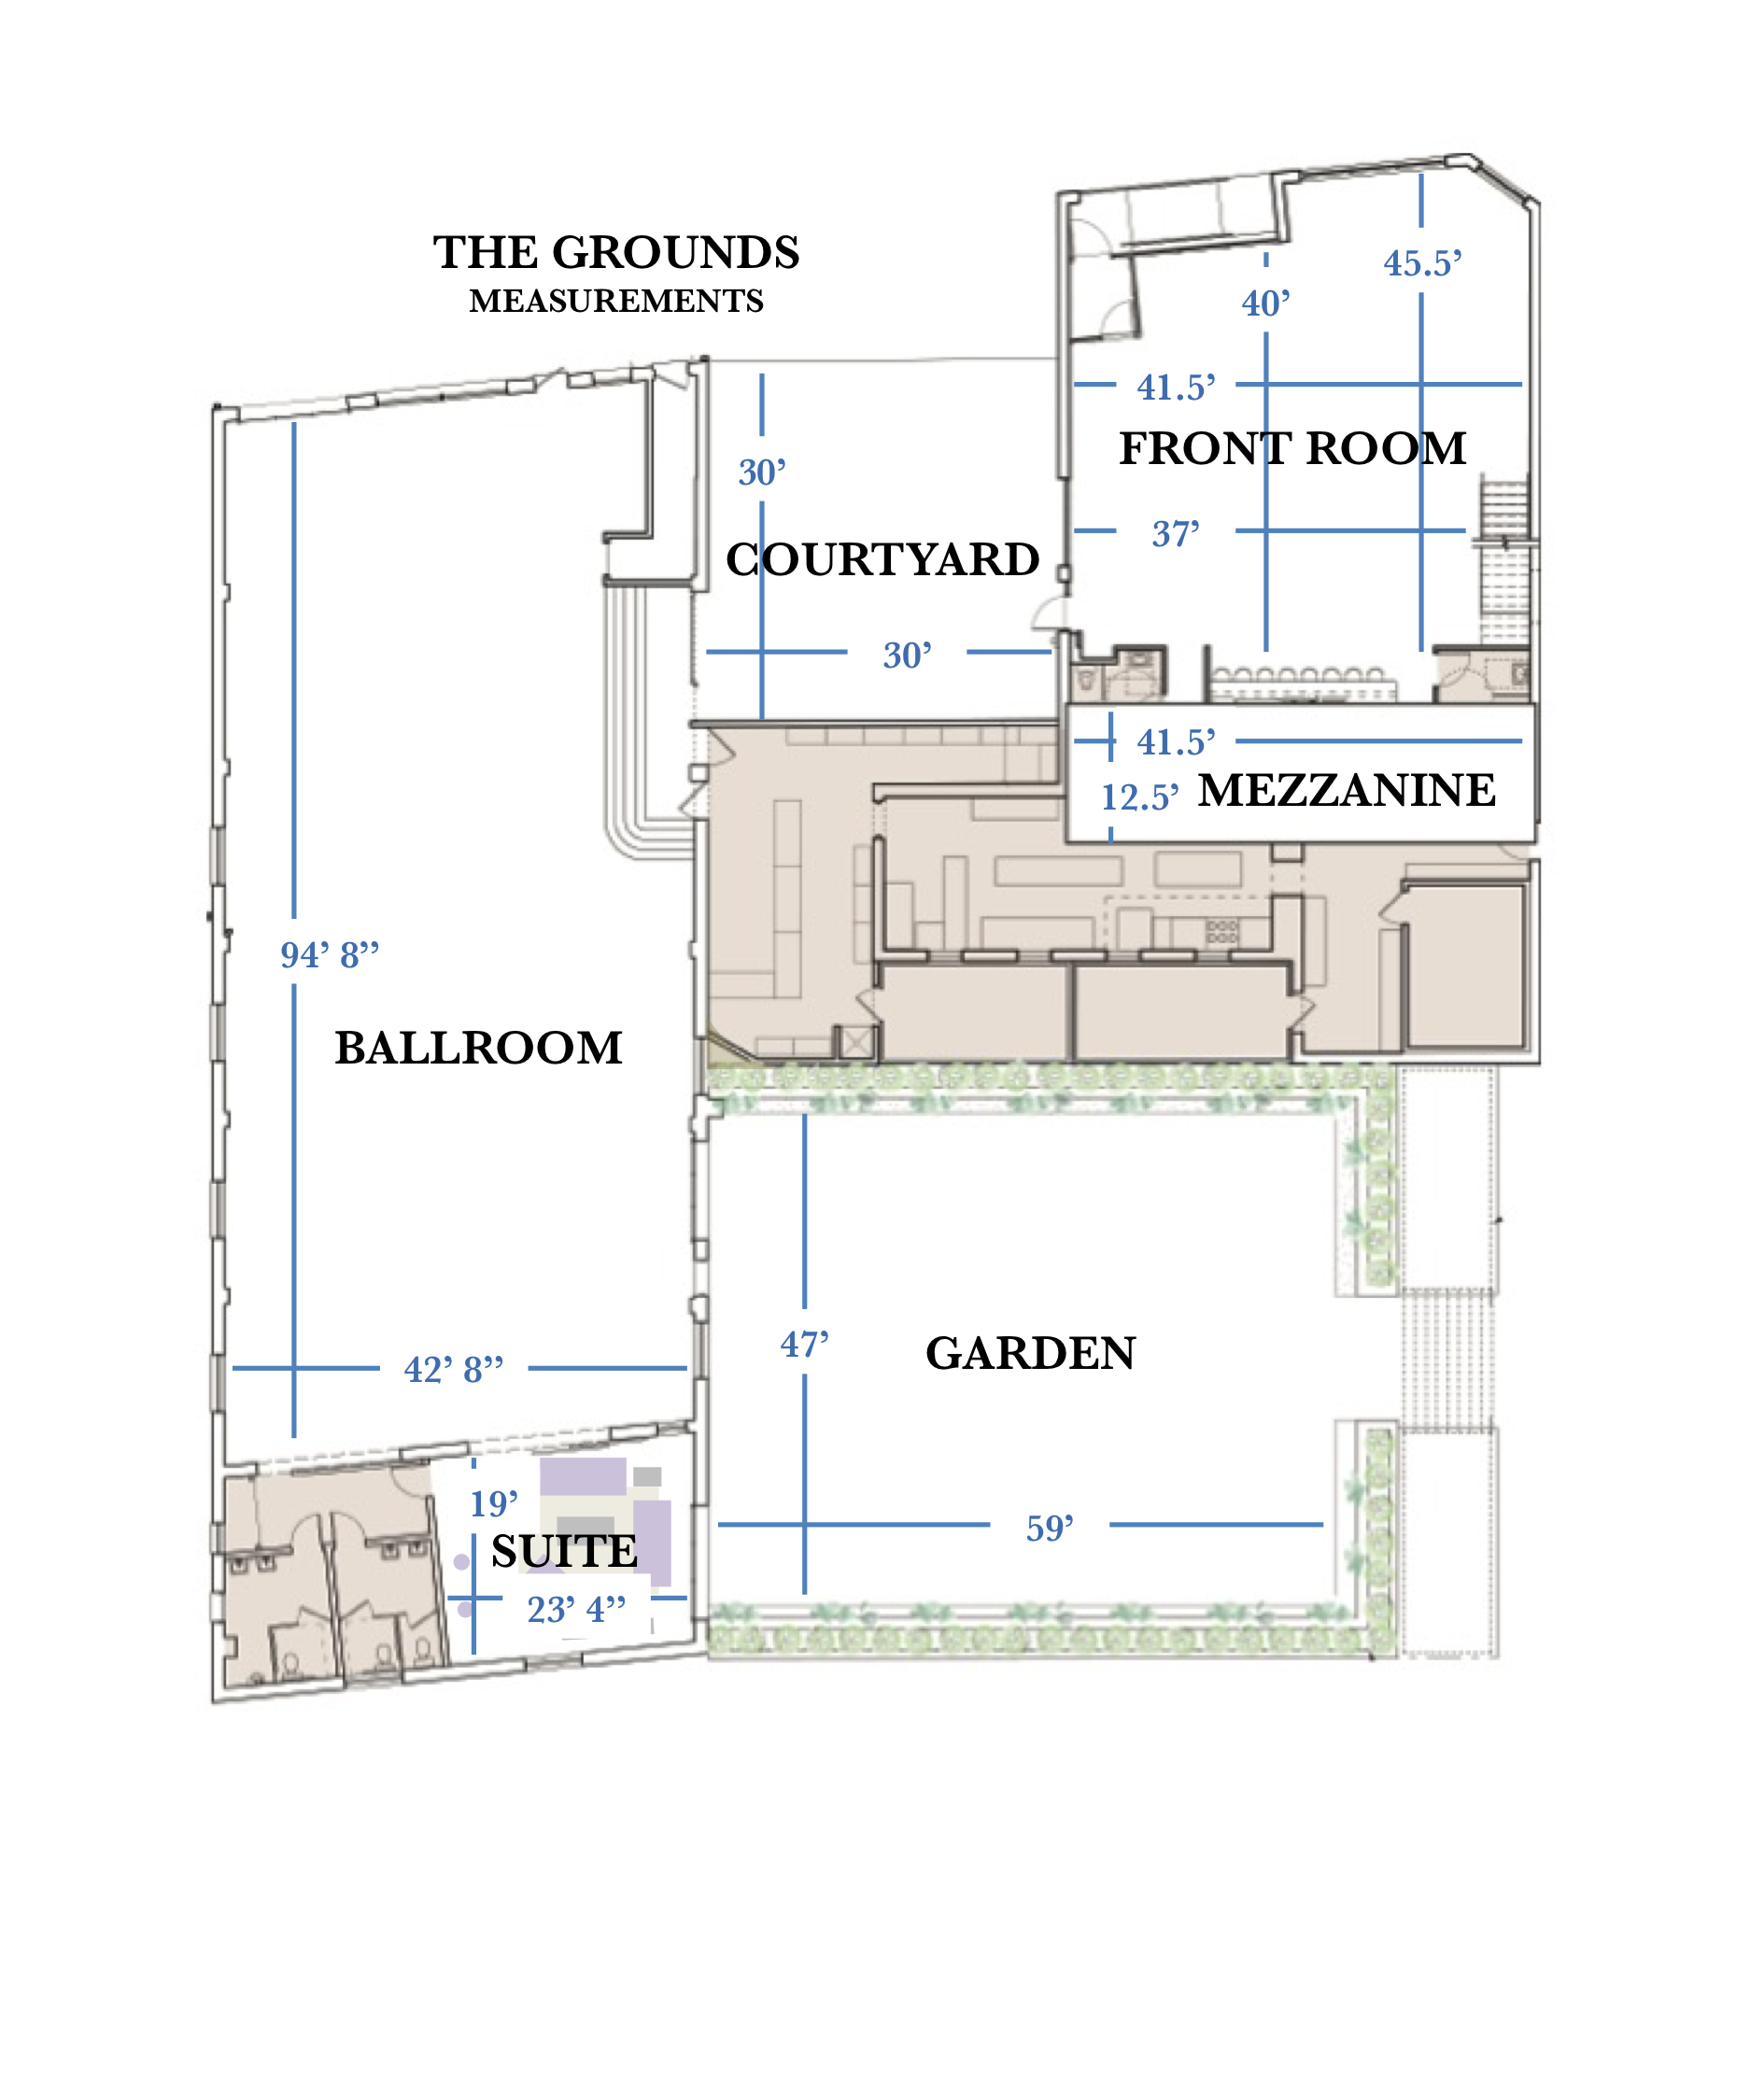 03 Measurements Front Room.png